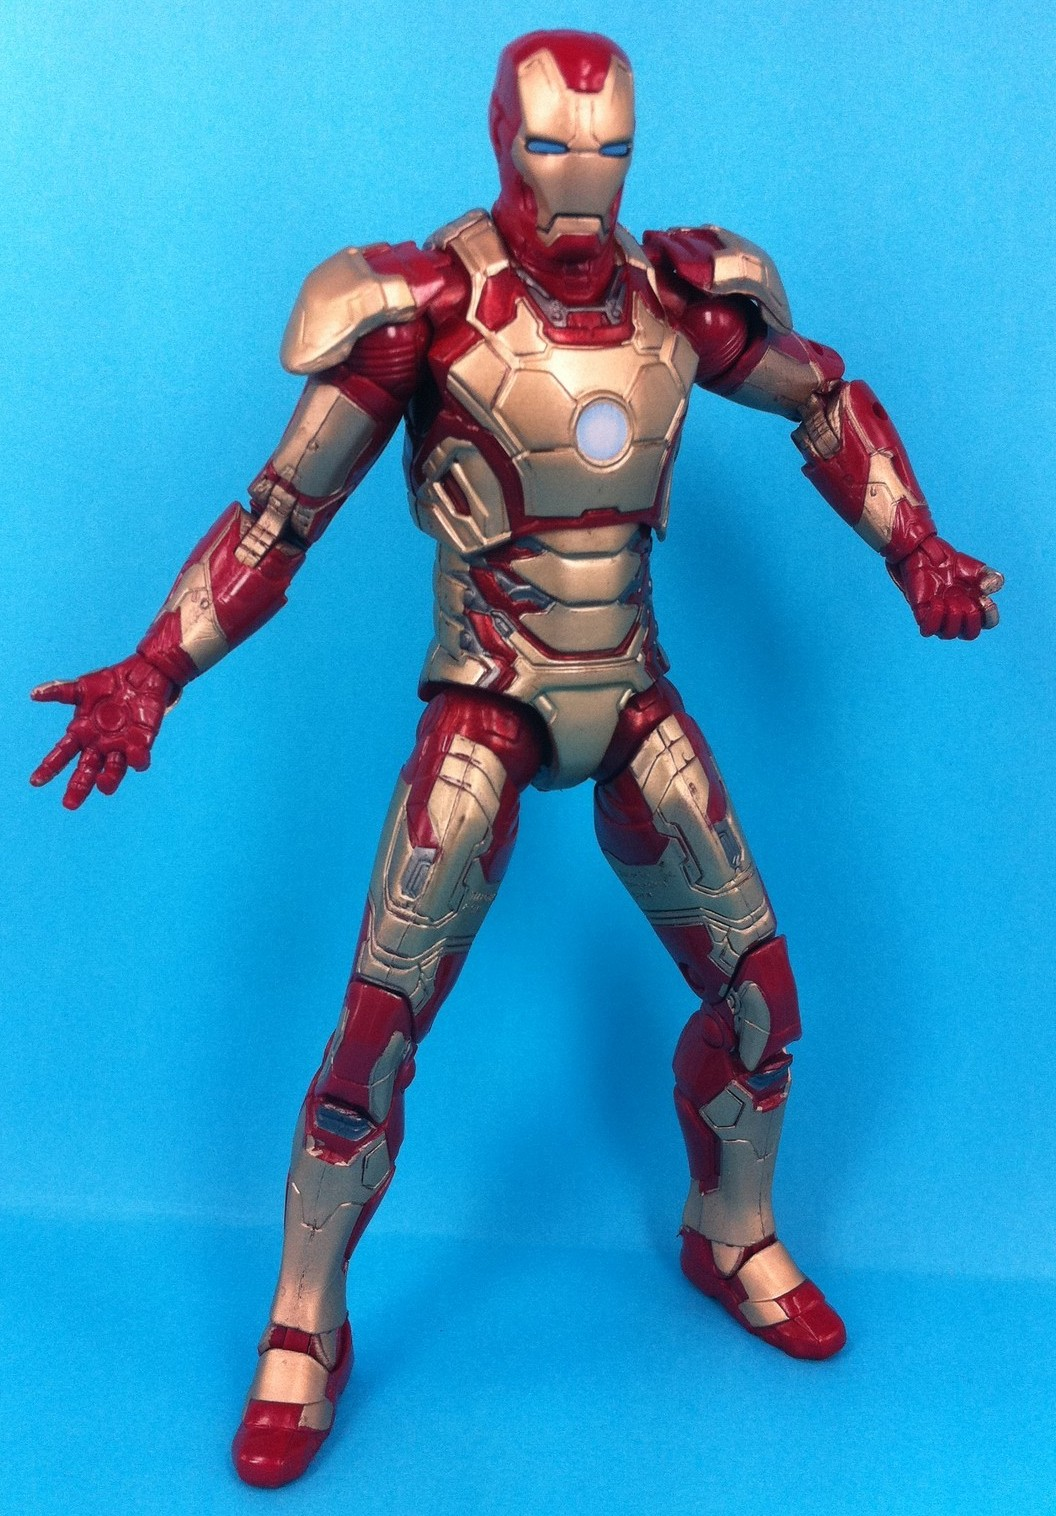 Hasbro Iron Man 3 Marvel Legends Iron Man Mark XLII Figure